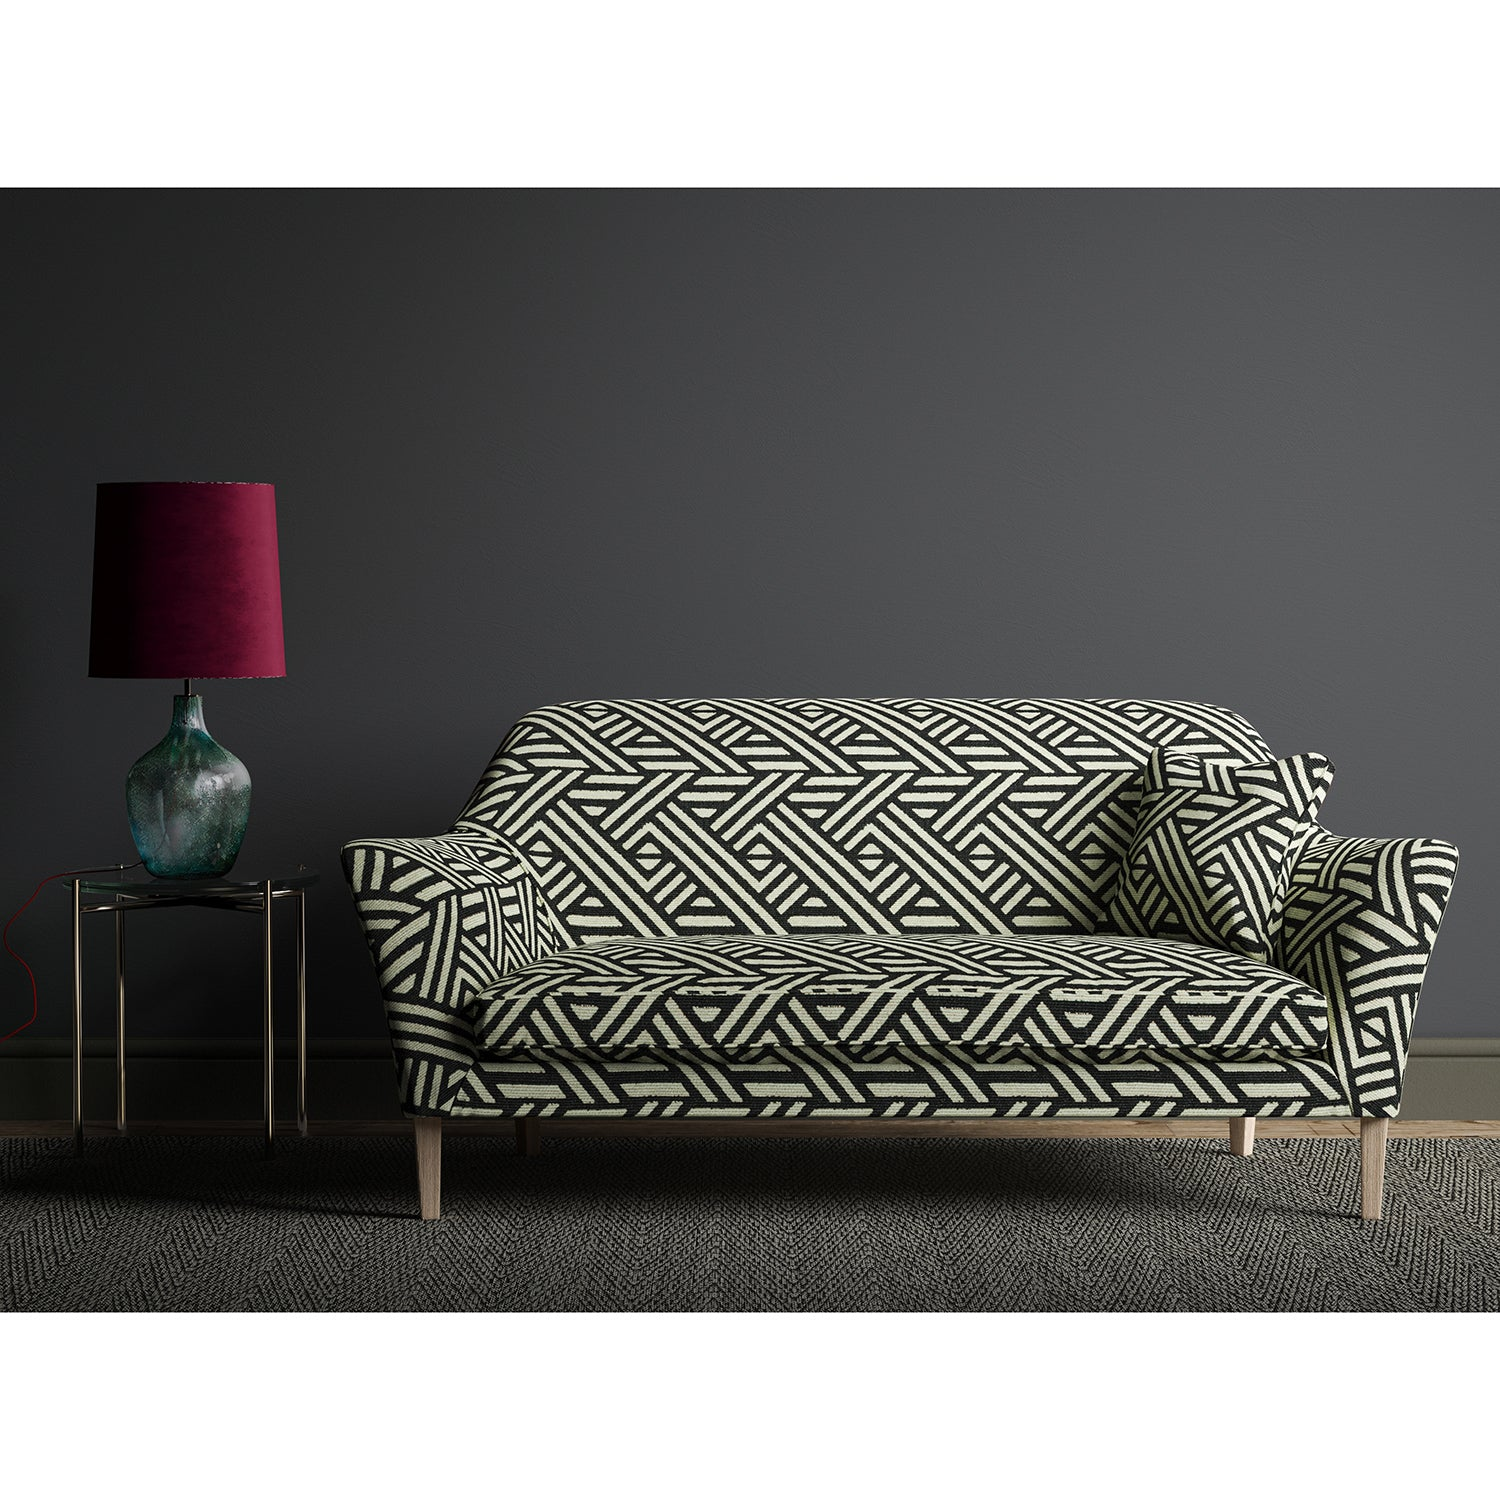 Sofa upholstered in a black and white geometric print